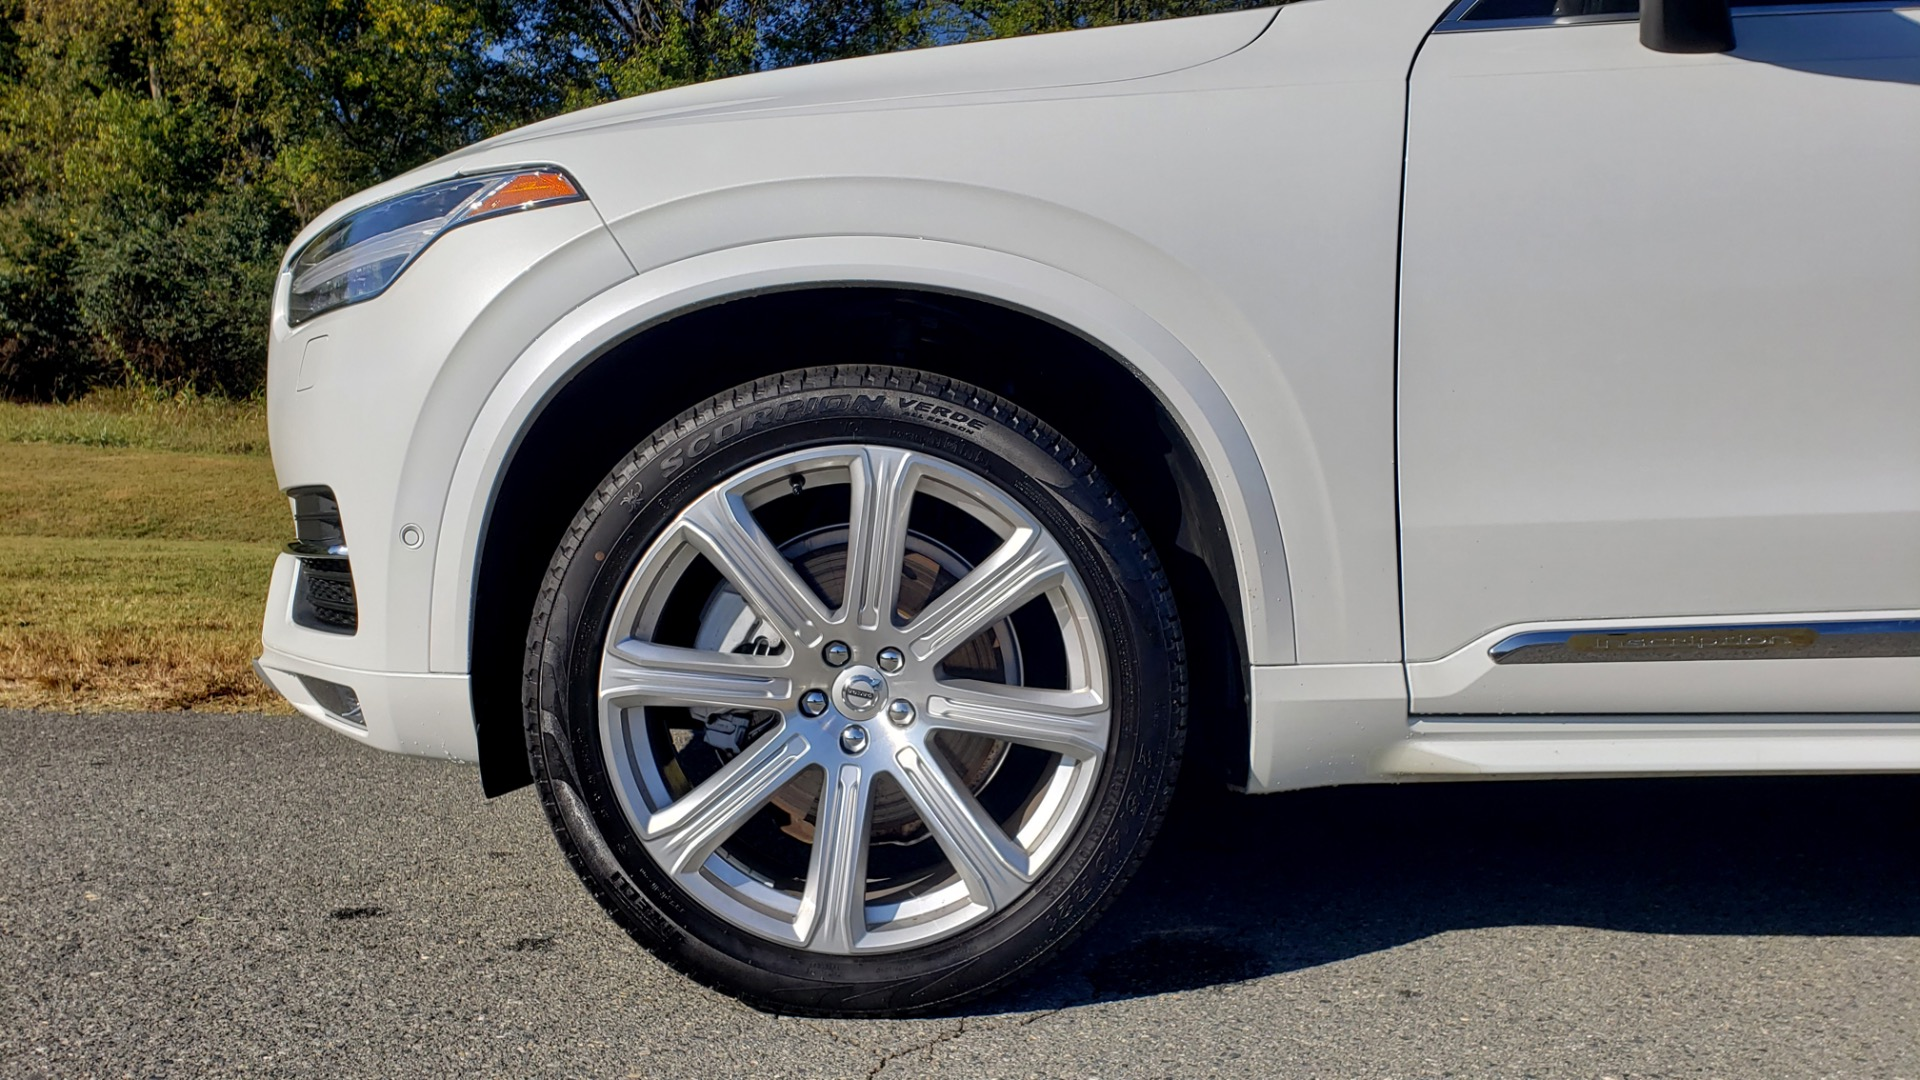 Used 2017 Volvo XC90 INSCRIPTION / AWD / NAV / SUNROOF / 3-ROW / CAMERA for sale Sold at Formula Imports in Charlotte NC 28227 7